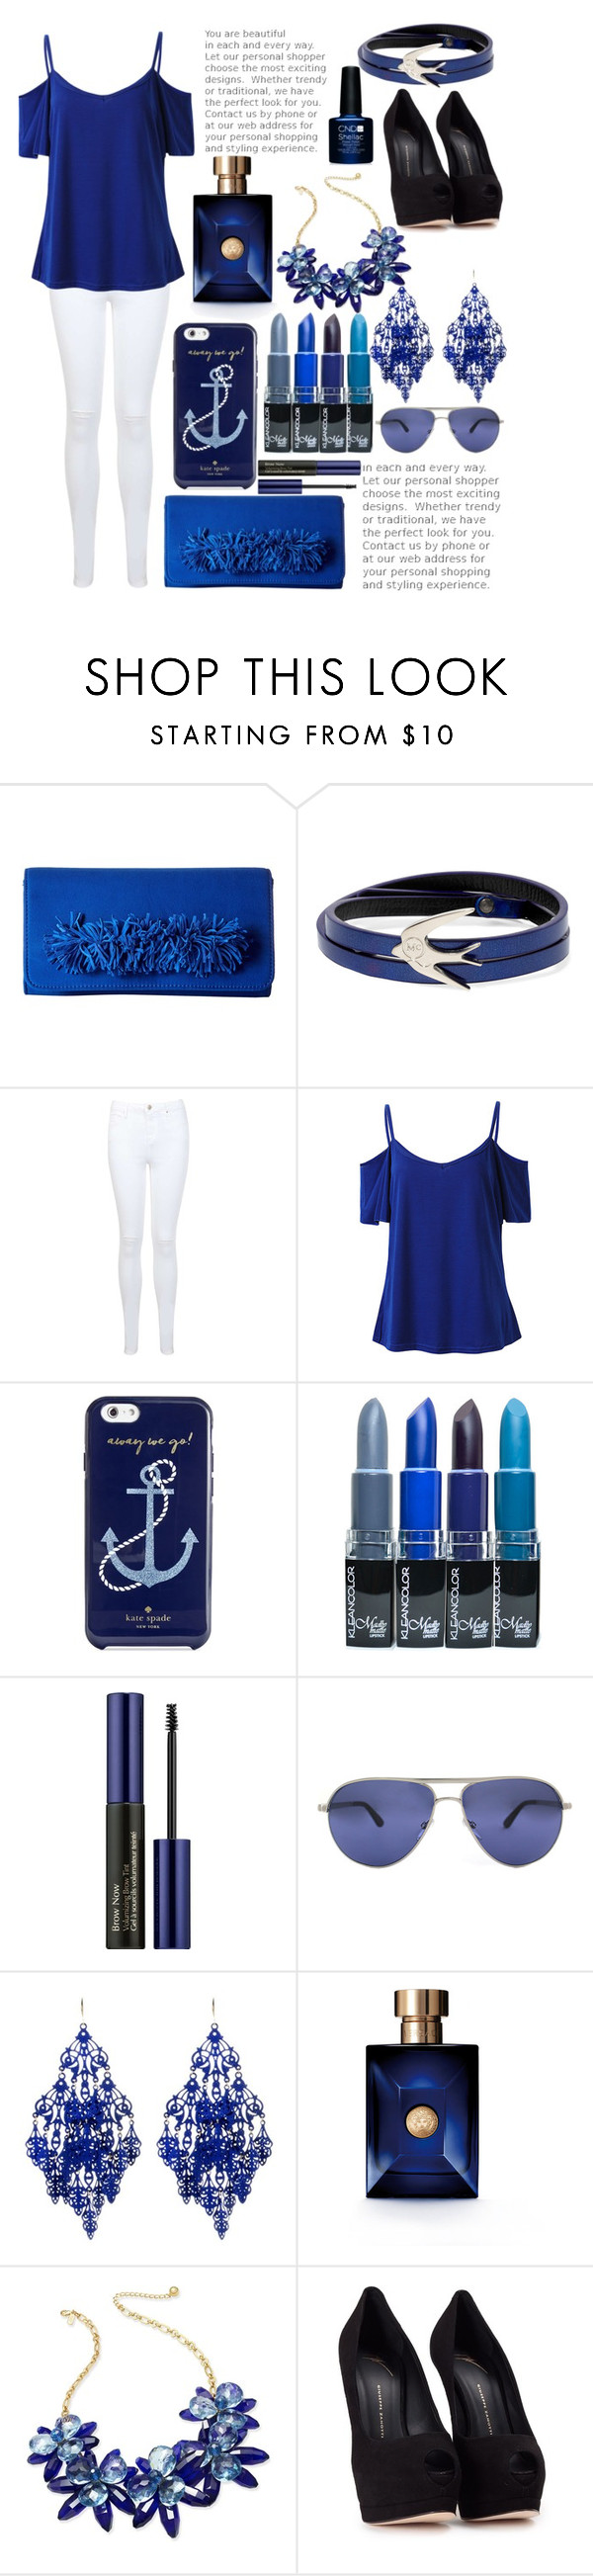 """""""Berry Blue ♥"""" by mpeeps60 ❤ liked on Polyvore featuring Steve Madden, McQ by Alexander McQueen, Miss Selfridge, Kate Spade, Estée Lauder, Persol, Amrita Singh, Versace and Giuseppe Zanotti"""